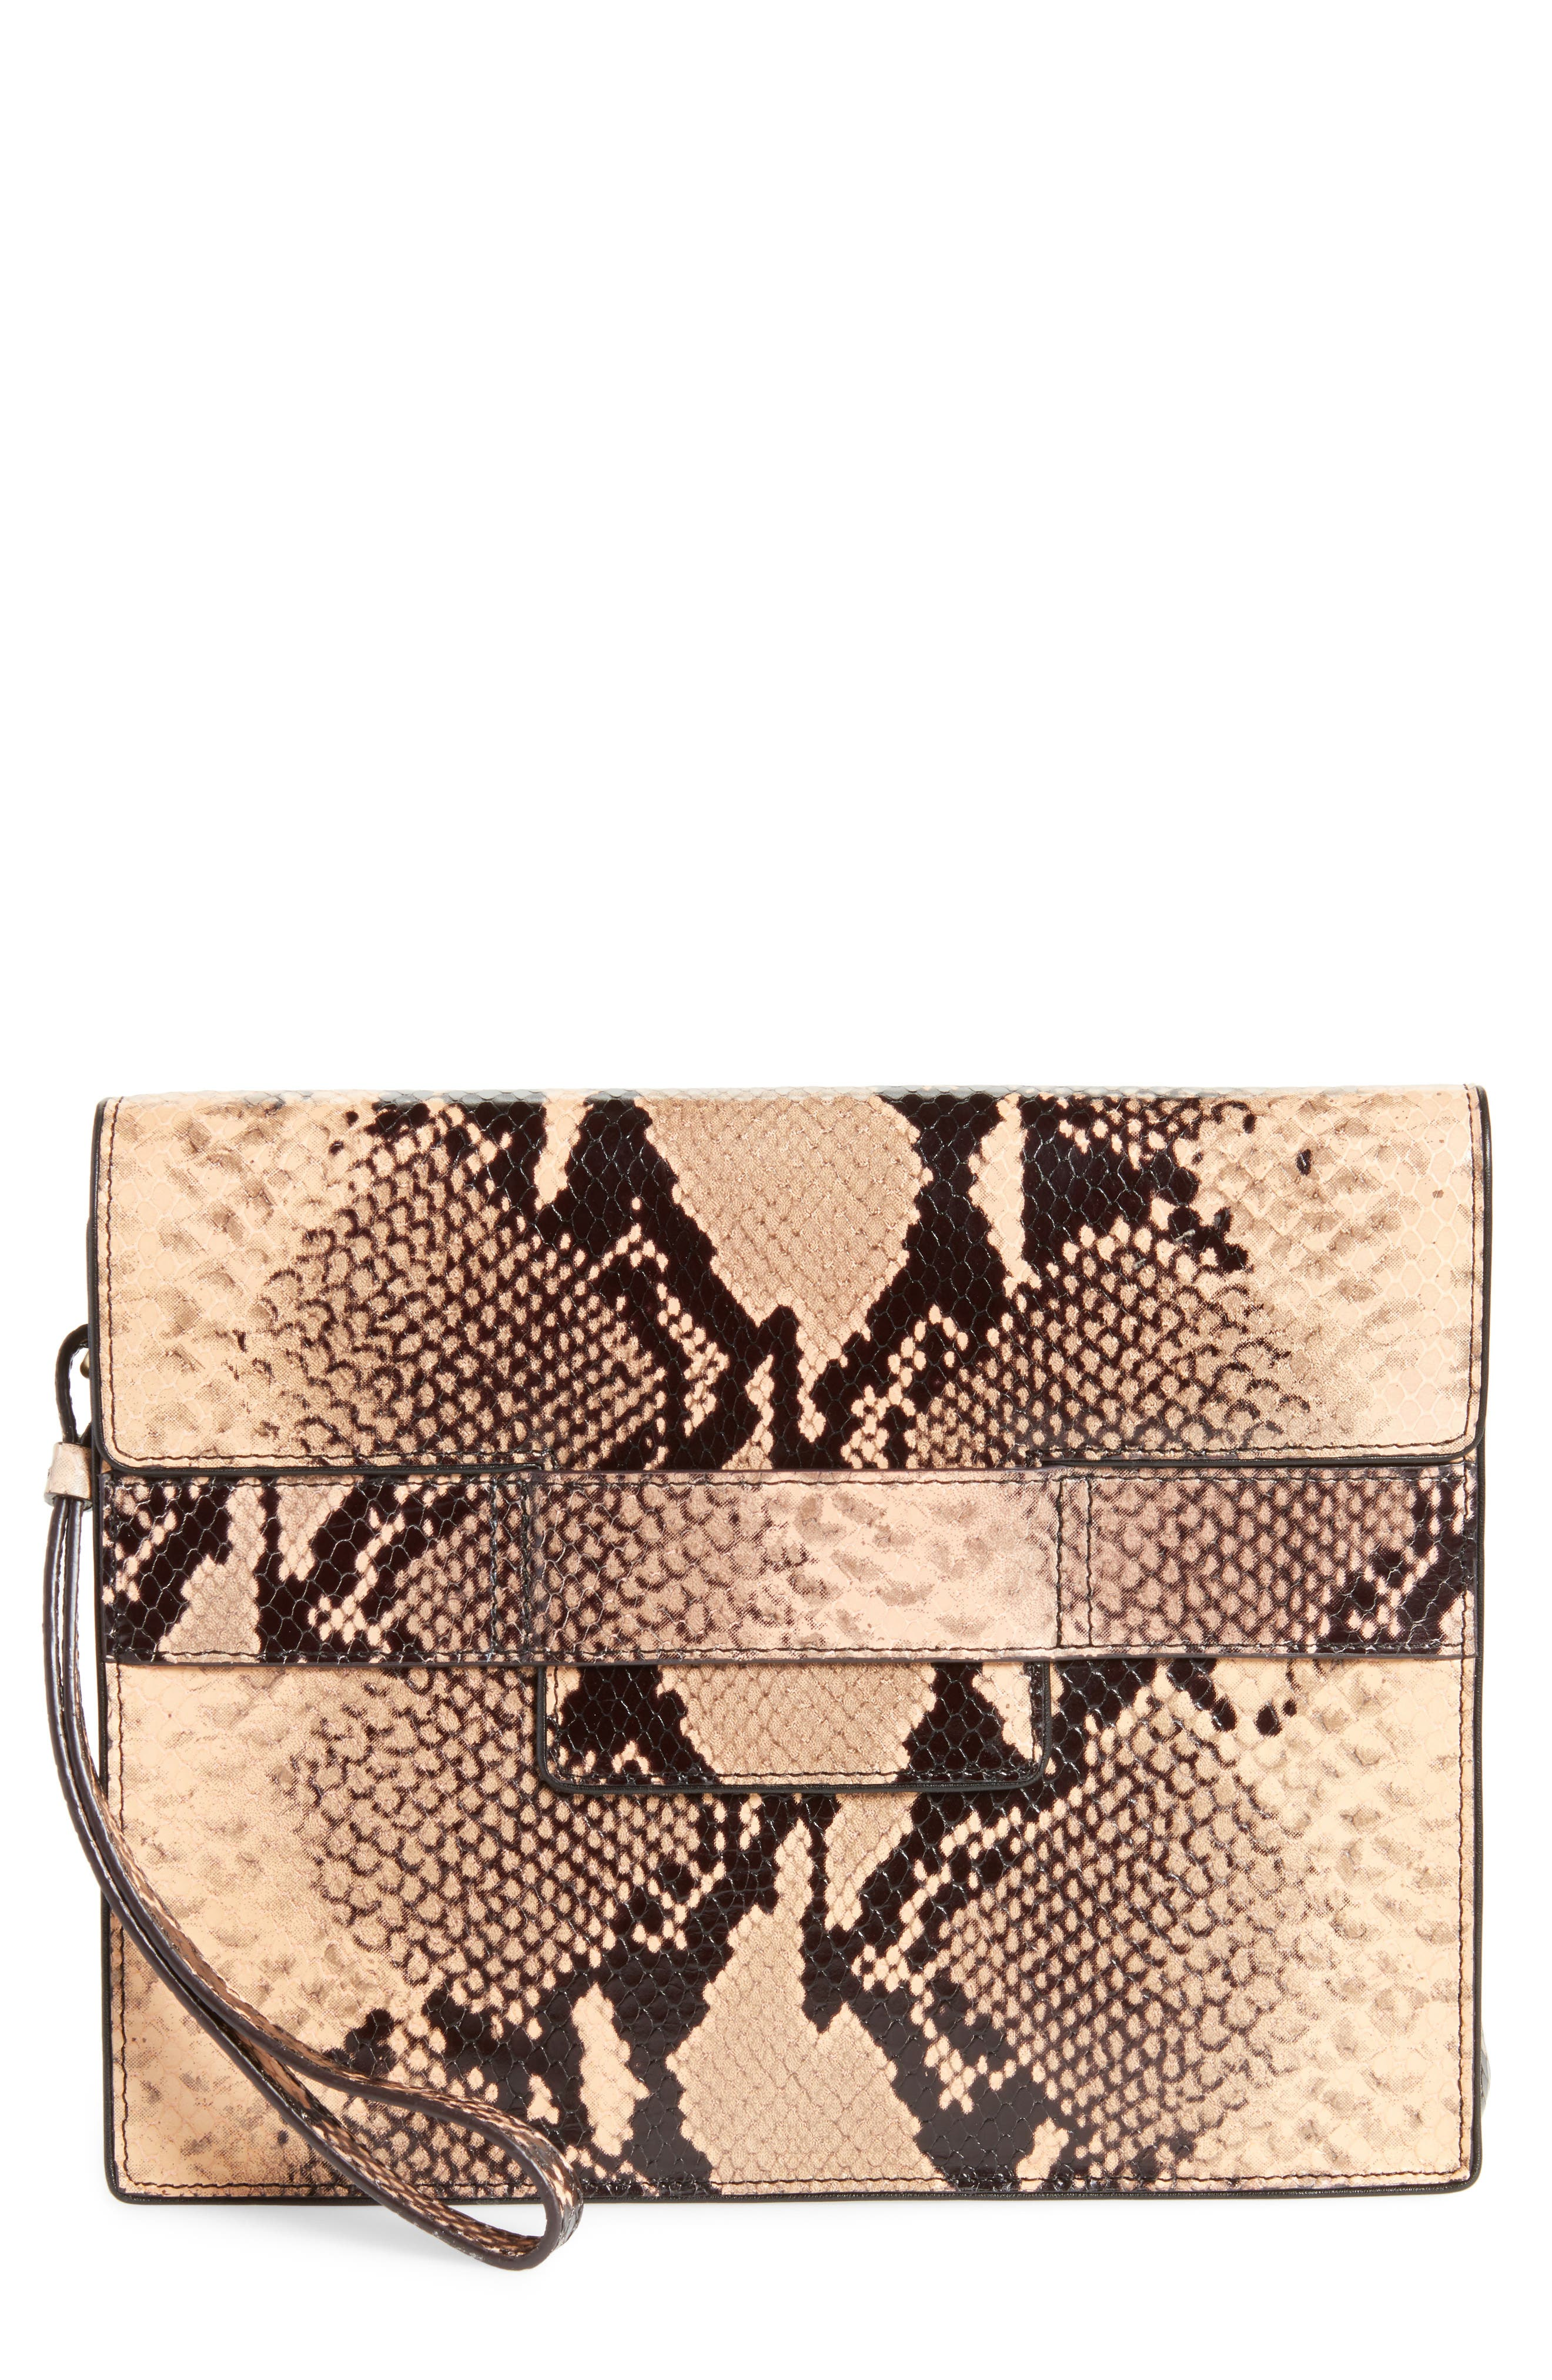 Snake Embossed Leather Wristlet Clutch,                             Main thumbnail 1, color,                             200